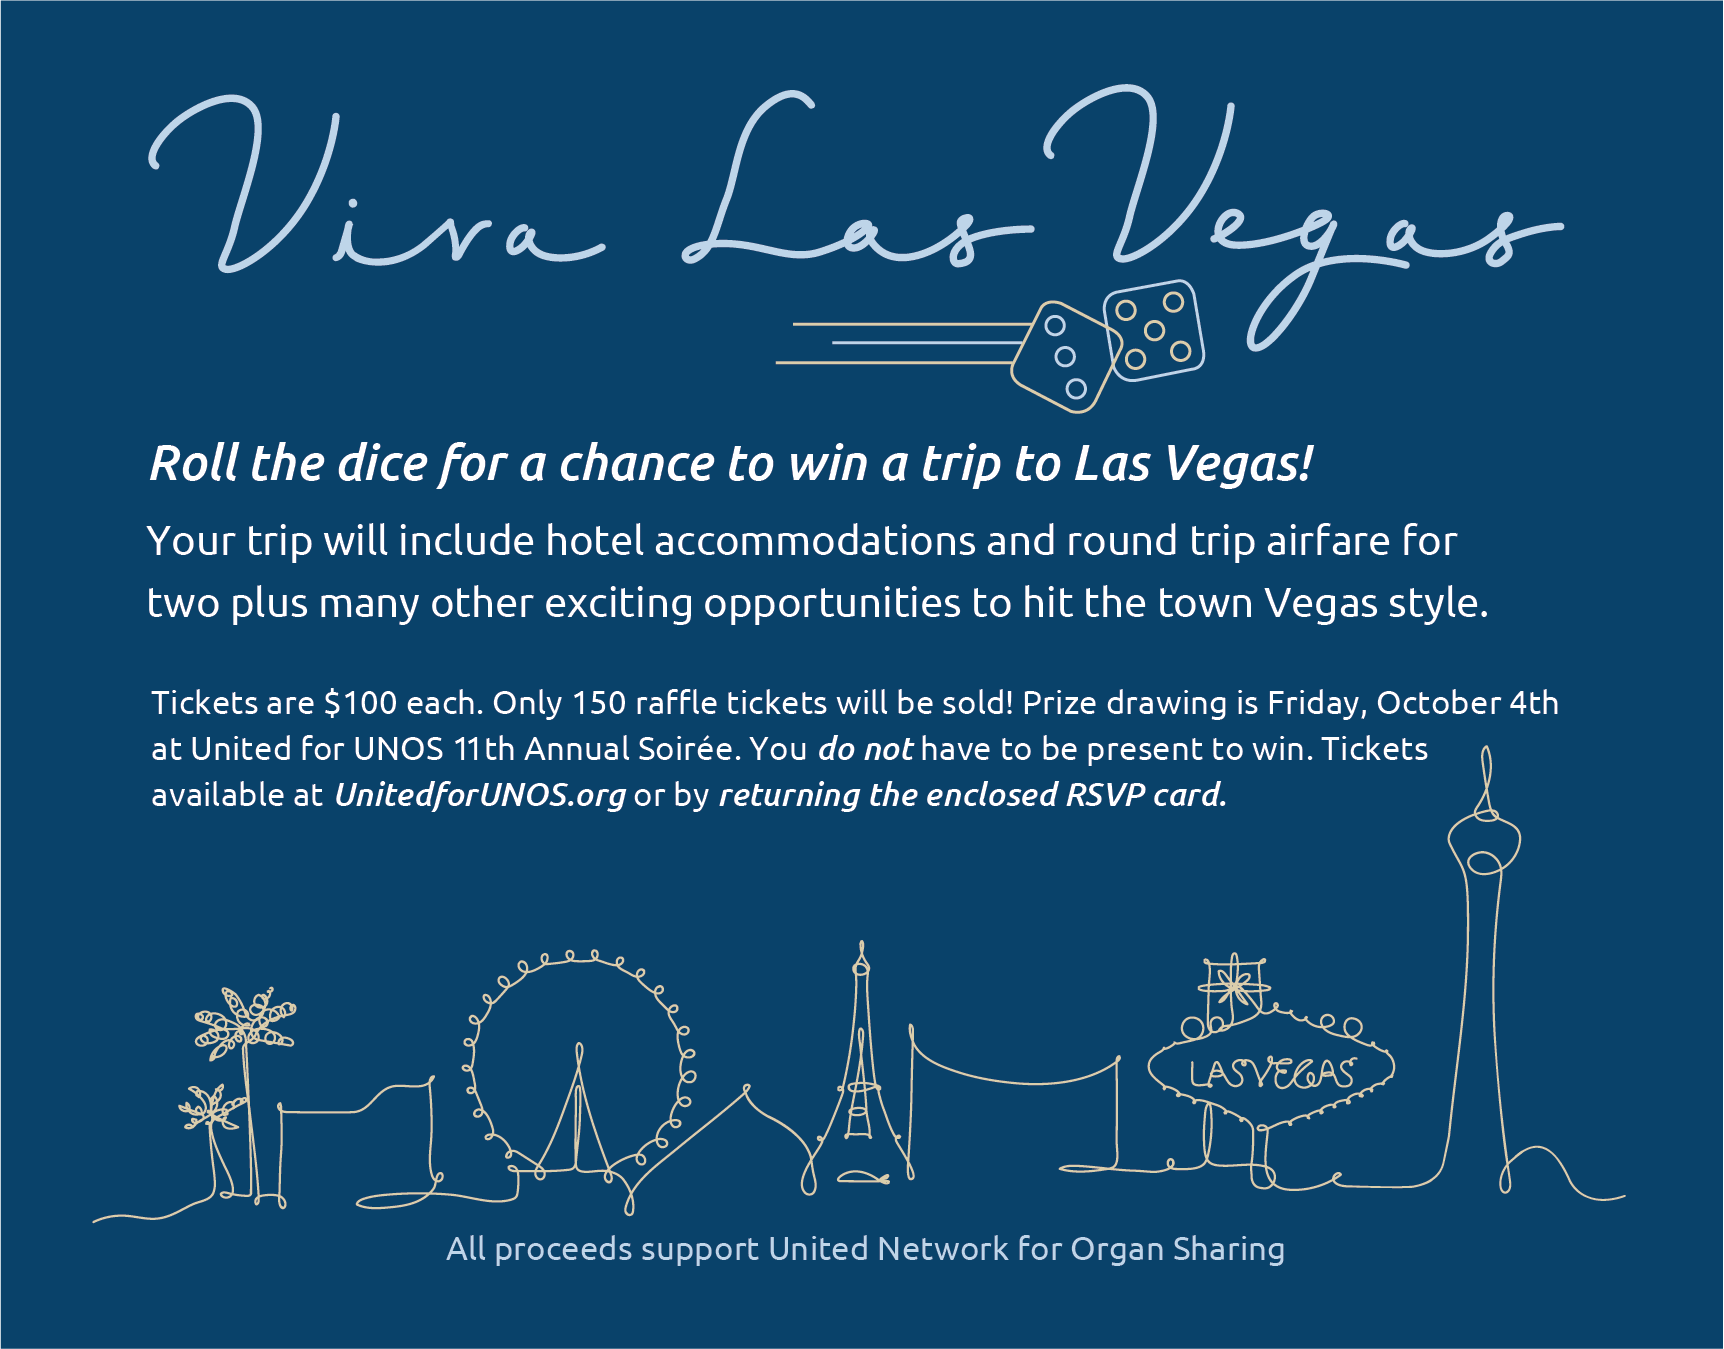 Roll the dice for a chance to win a trip to Las Vegas! Your trip will include hotel accommodations and round trip airfare for two plus many other exciting opportunities to hit the town Vegas style. Tickets are $100 each. Only 150 raffle tickets will be sold! Prize drawing is Friday, October 4th at United for UNOS 11th Annual Soirée. You do not have to be present to win. Tickets available at UnitedforUNOS.org or by returning the enclosed RSVP card.